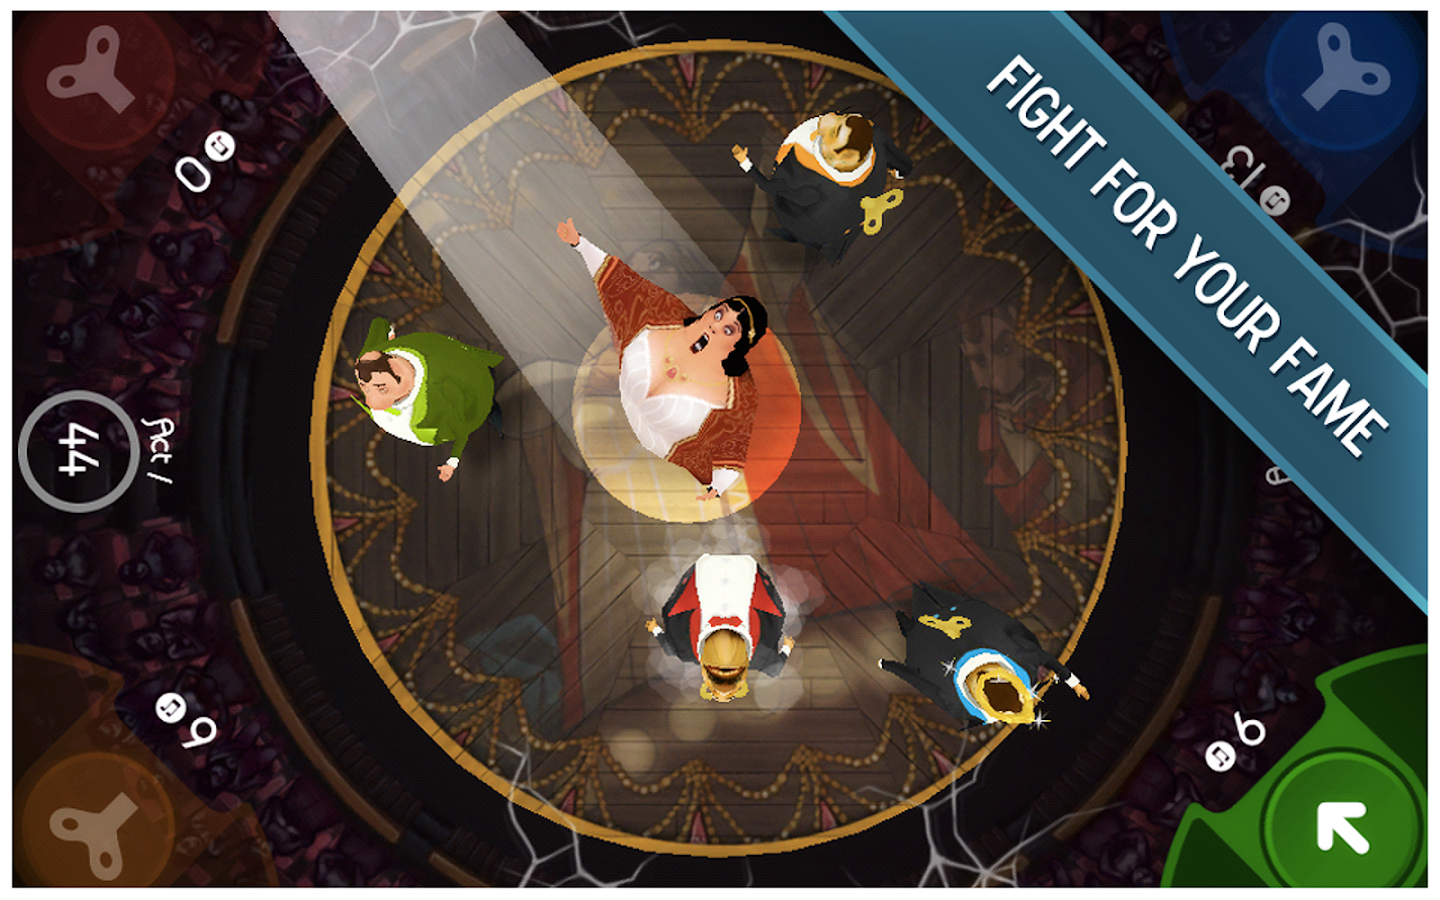 King of Opera - Party Game! Screenshot 3